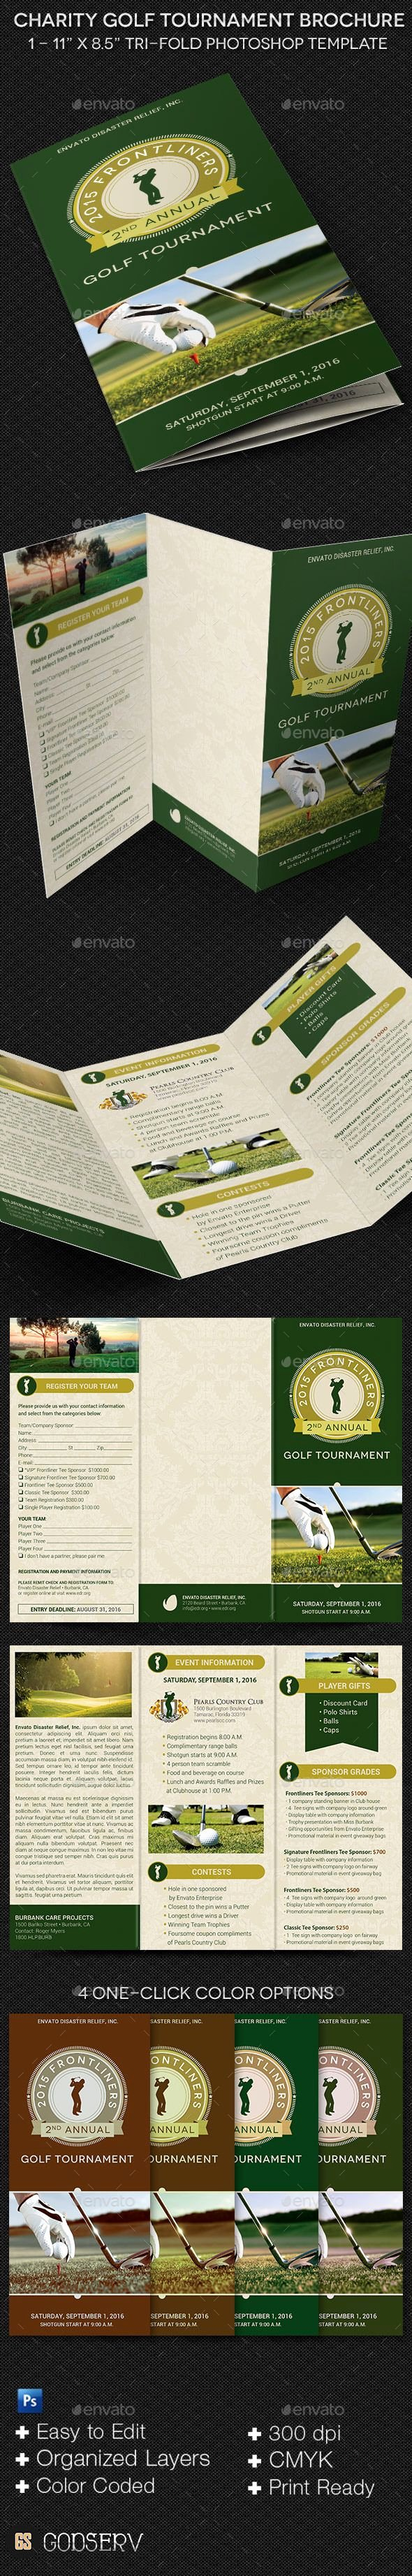 Golf Outing Flyer Template Awesome Charity Golf tournament Brochure Template